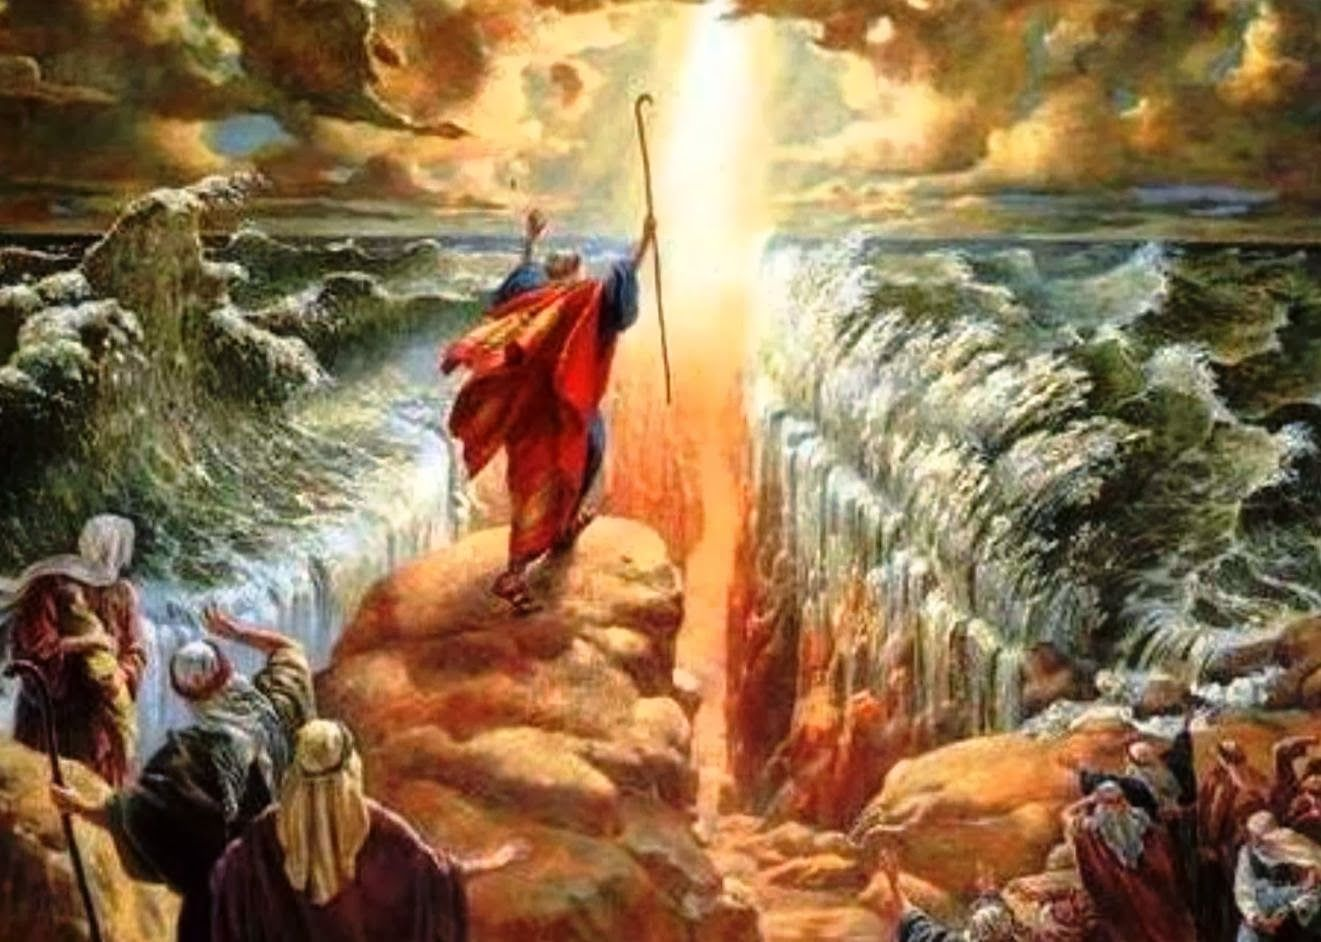 Moses parts the Red Sea - Artist Unknown